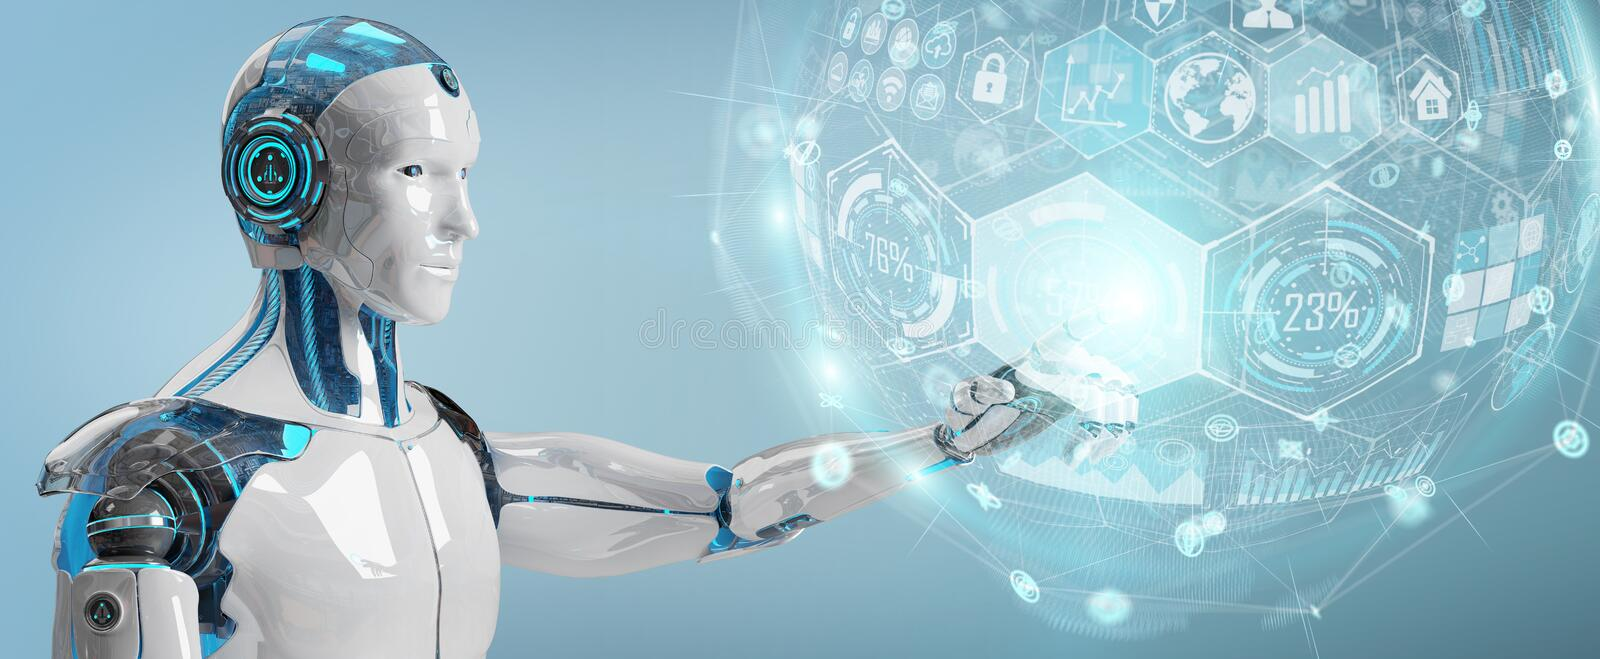 White male cyborg using digital chart interface 3D rendering royalty free illustration